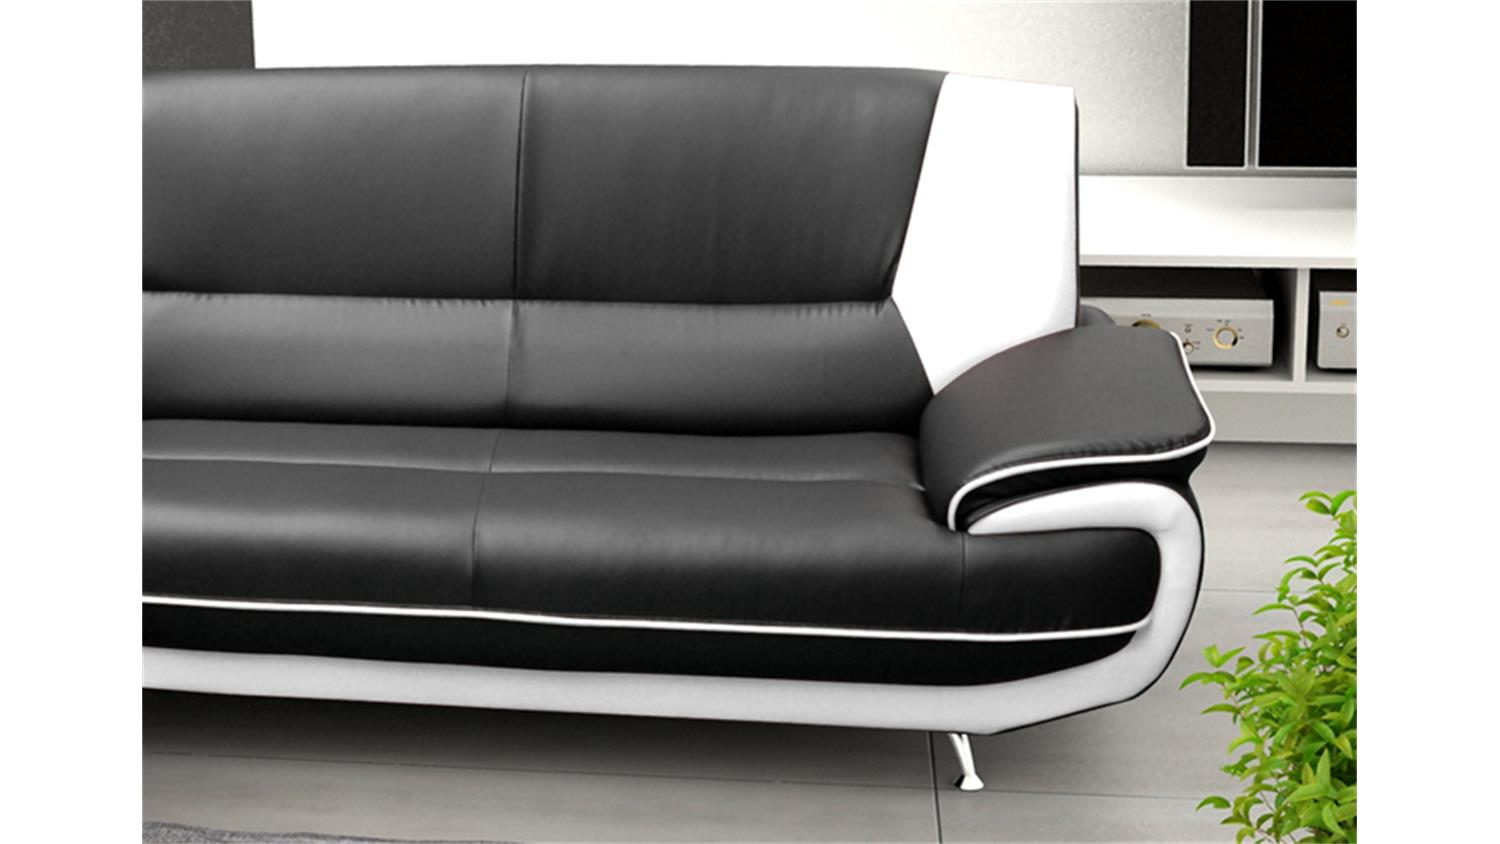 ecksofa palermo max in schwarz und wei mit metallf en. Black Bedroom Furniture Sets. Home Design Ideas